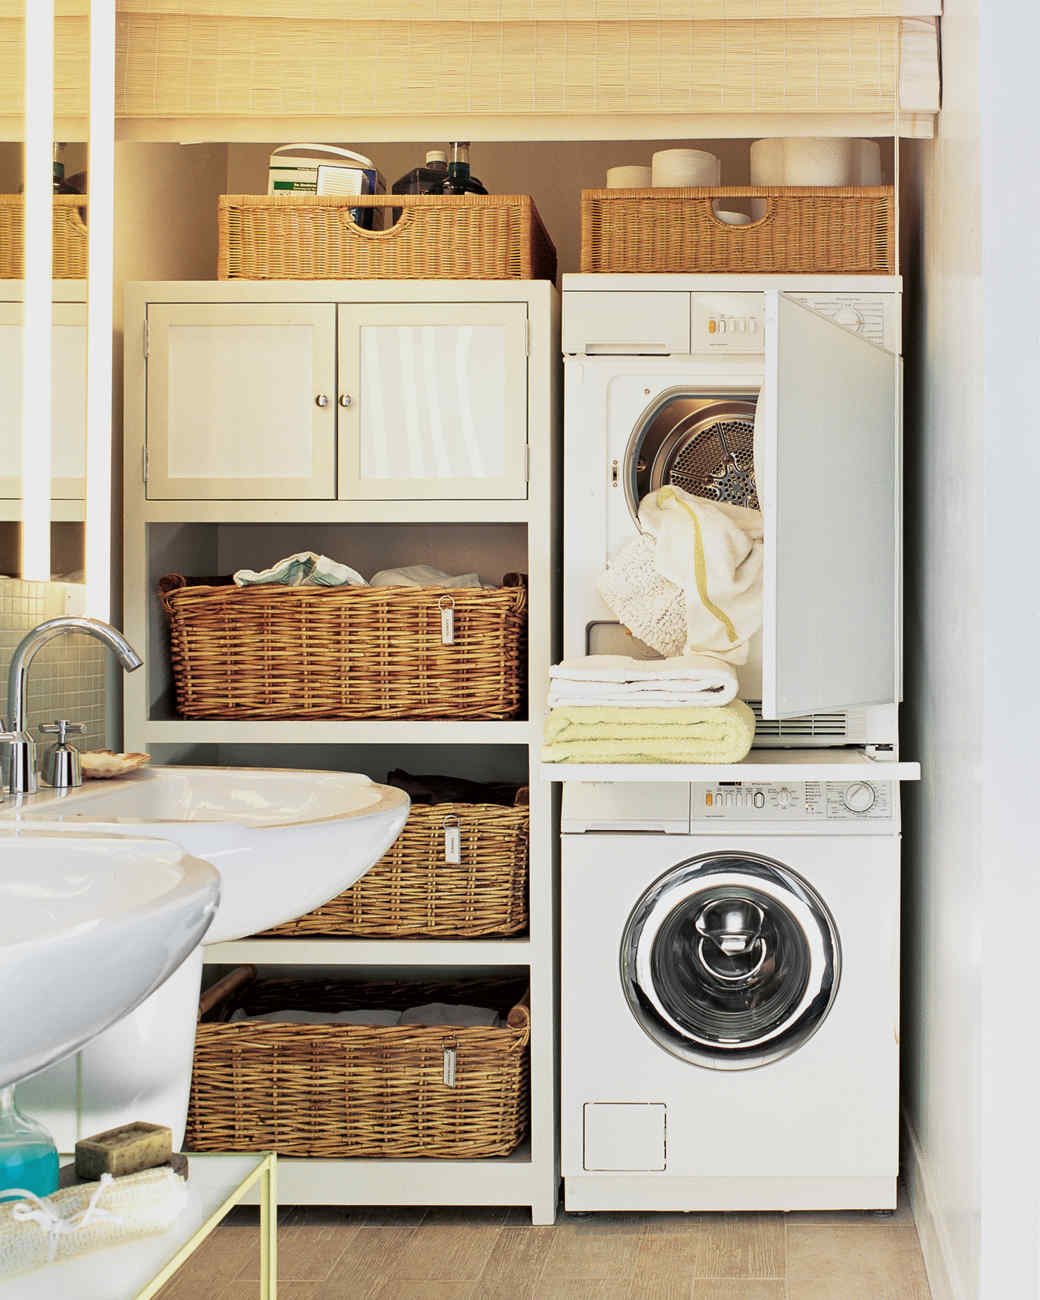 Design Small Laundry Rooms 12 essential laundry room organizing ideas martha stewart